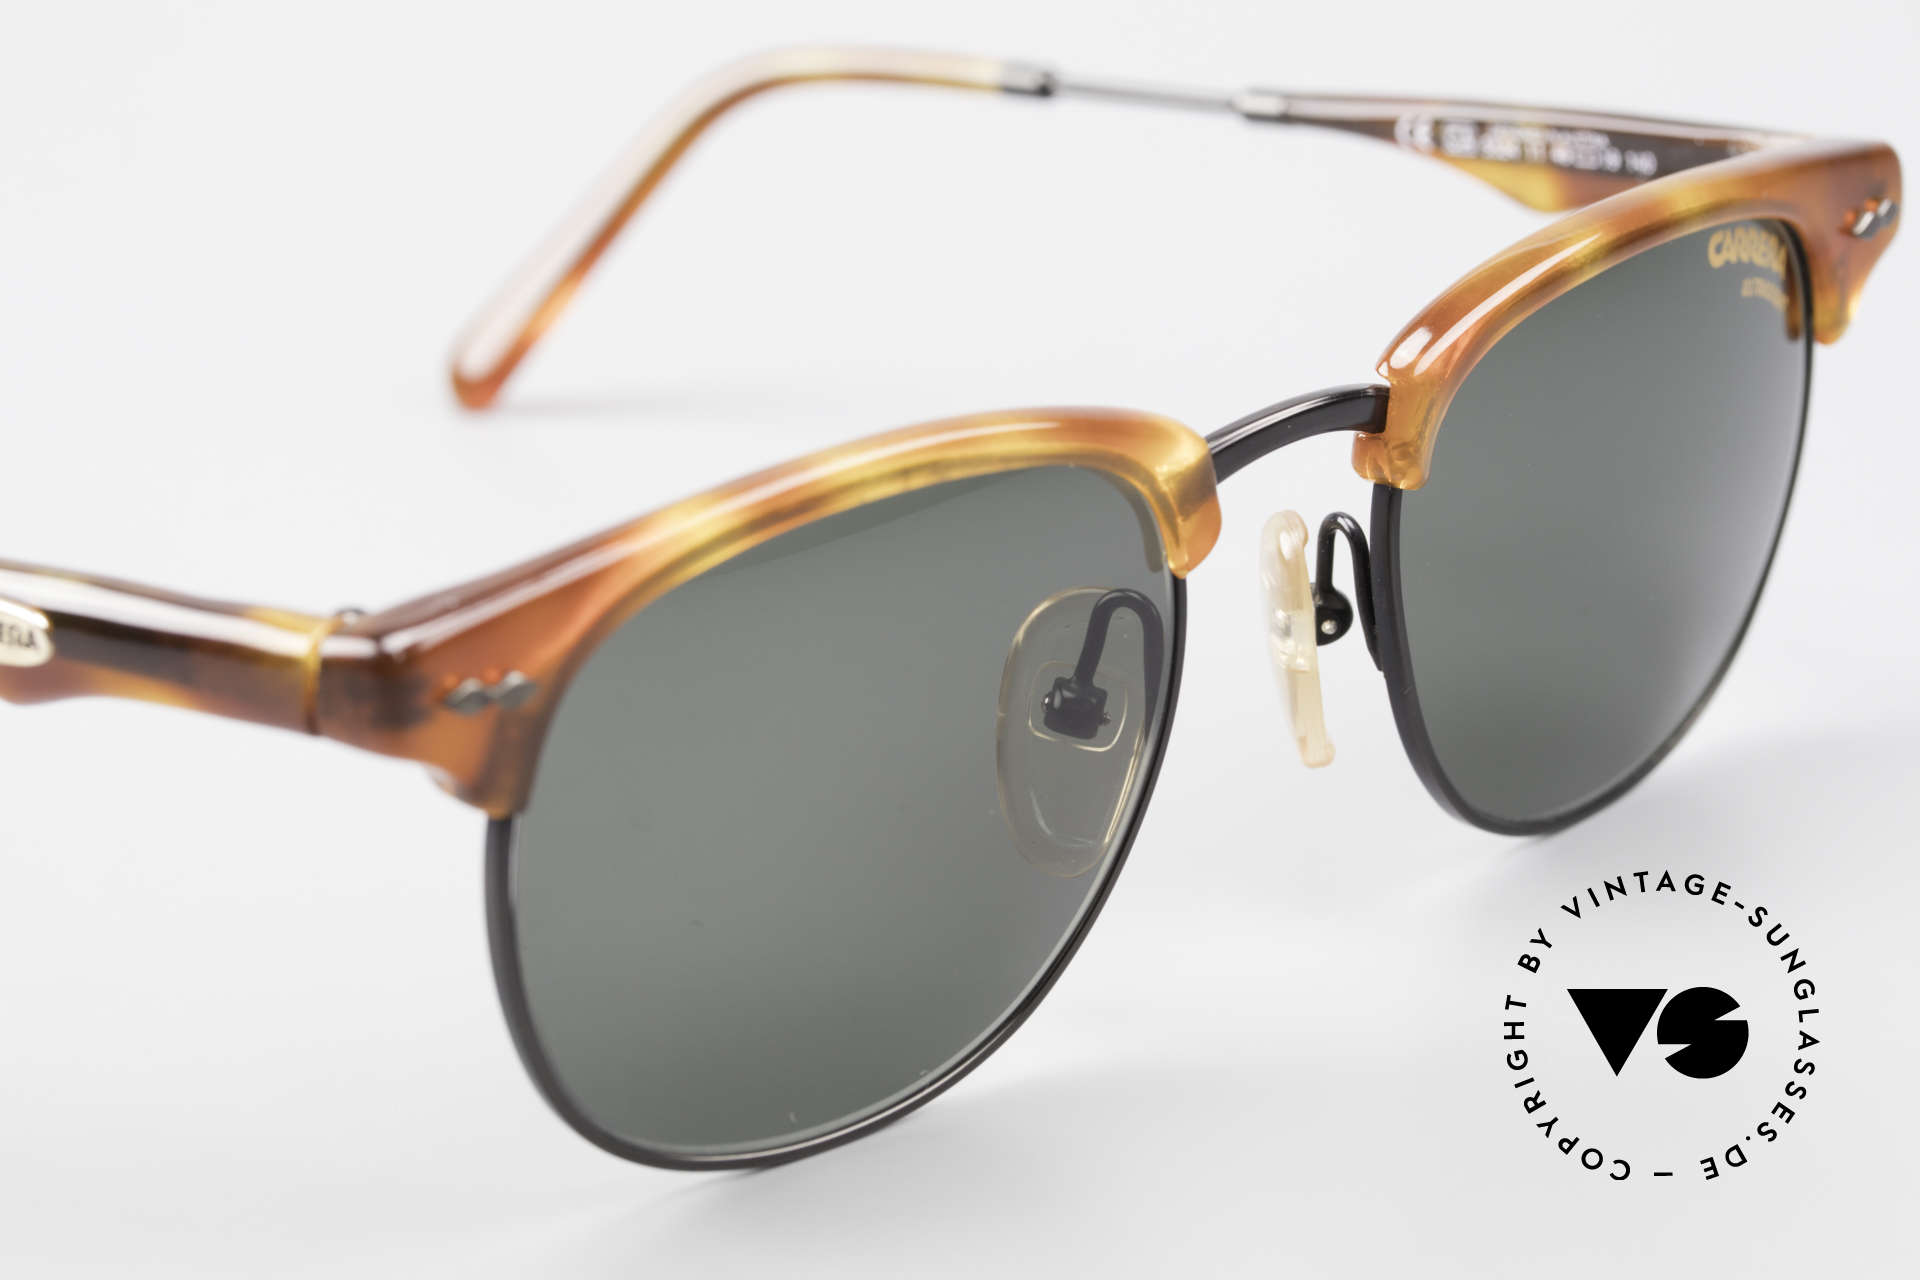 Carrera 5624 Clubmaster Shape Sunglasses, with ULTRASIGHT sun lenses (for 100% UV Protection), Made for Men